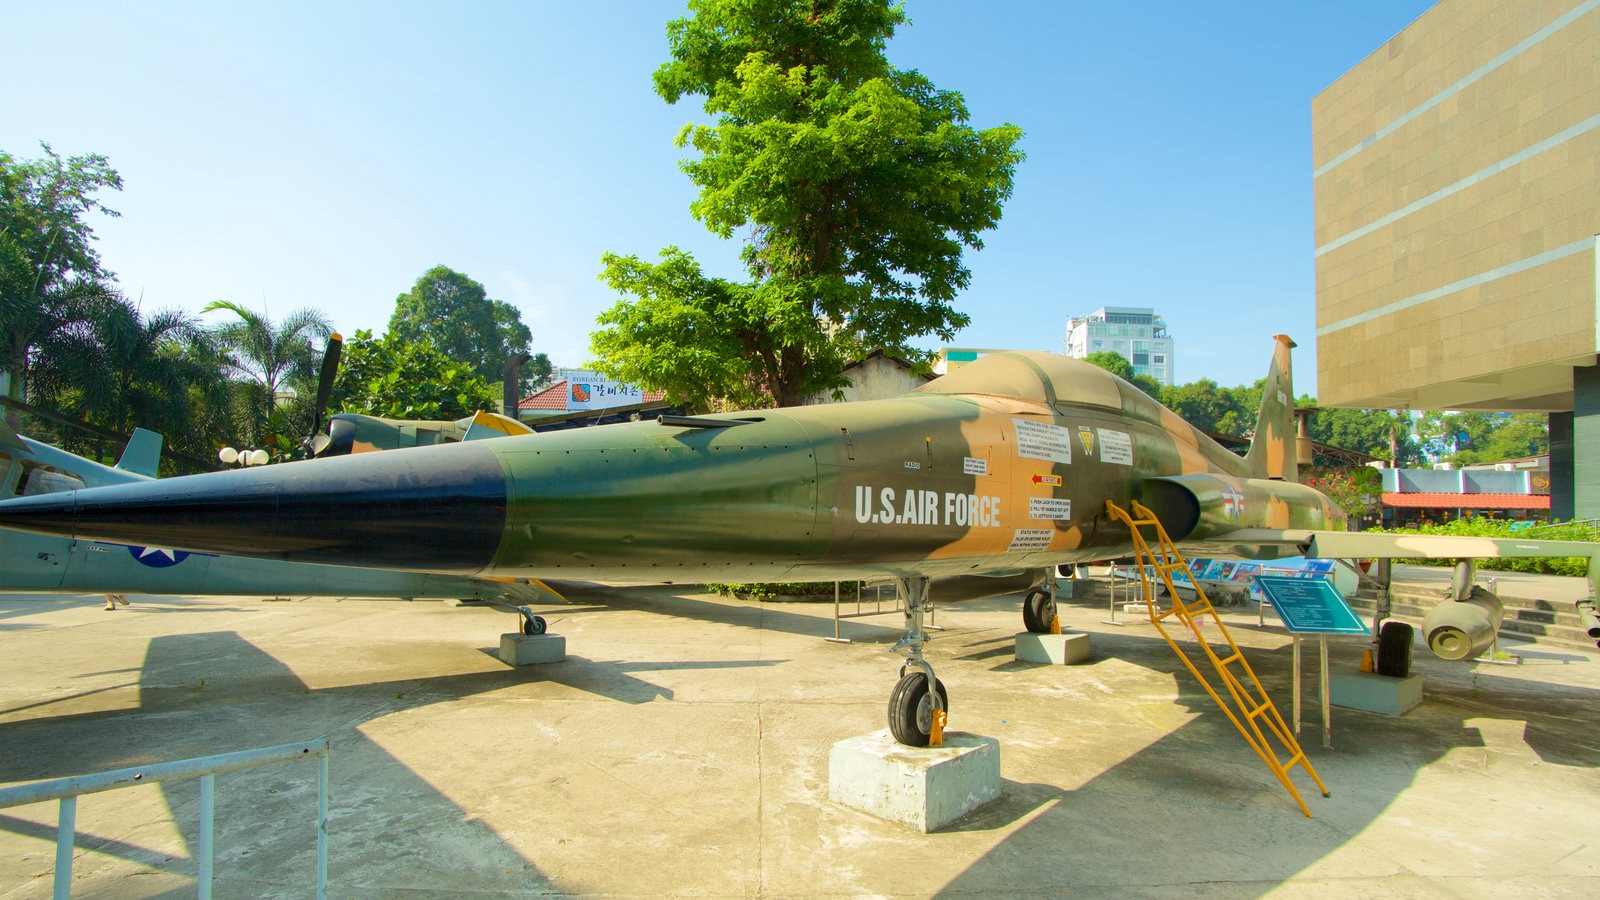 War Remnants Museum featuring aircraft and military items